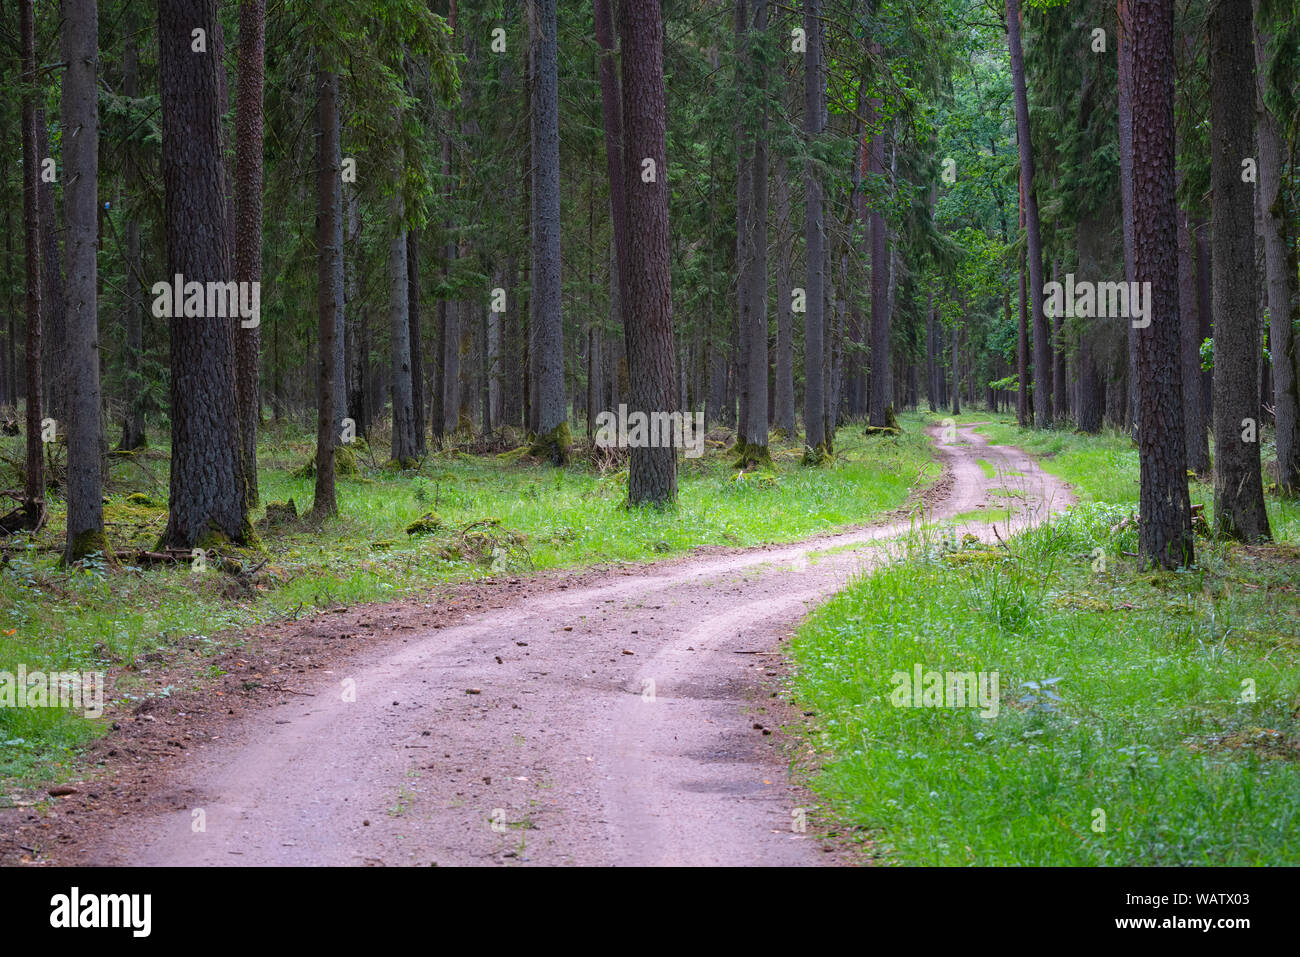 Gravel and sand road in the pine forest. Diminishing perspective of the path in the woods. Walking or driving through the trees on the forrest road wi Stock Photo